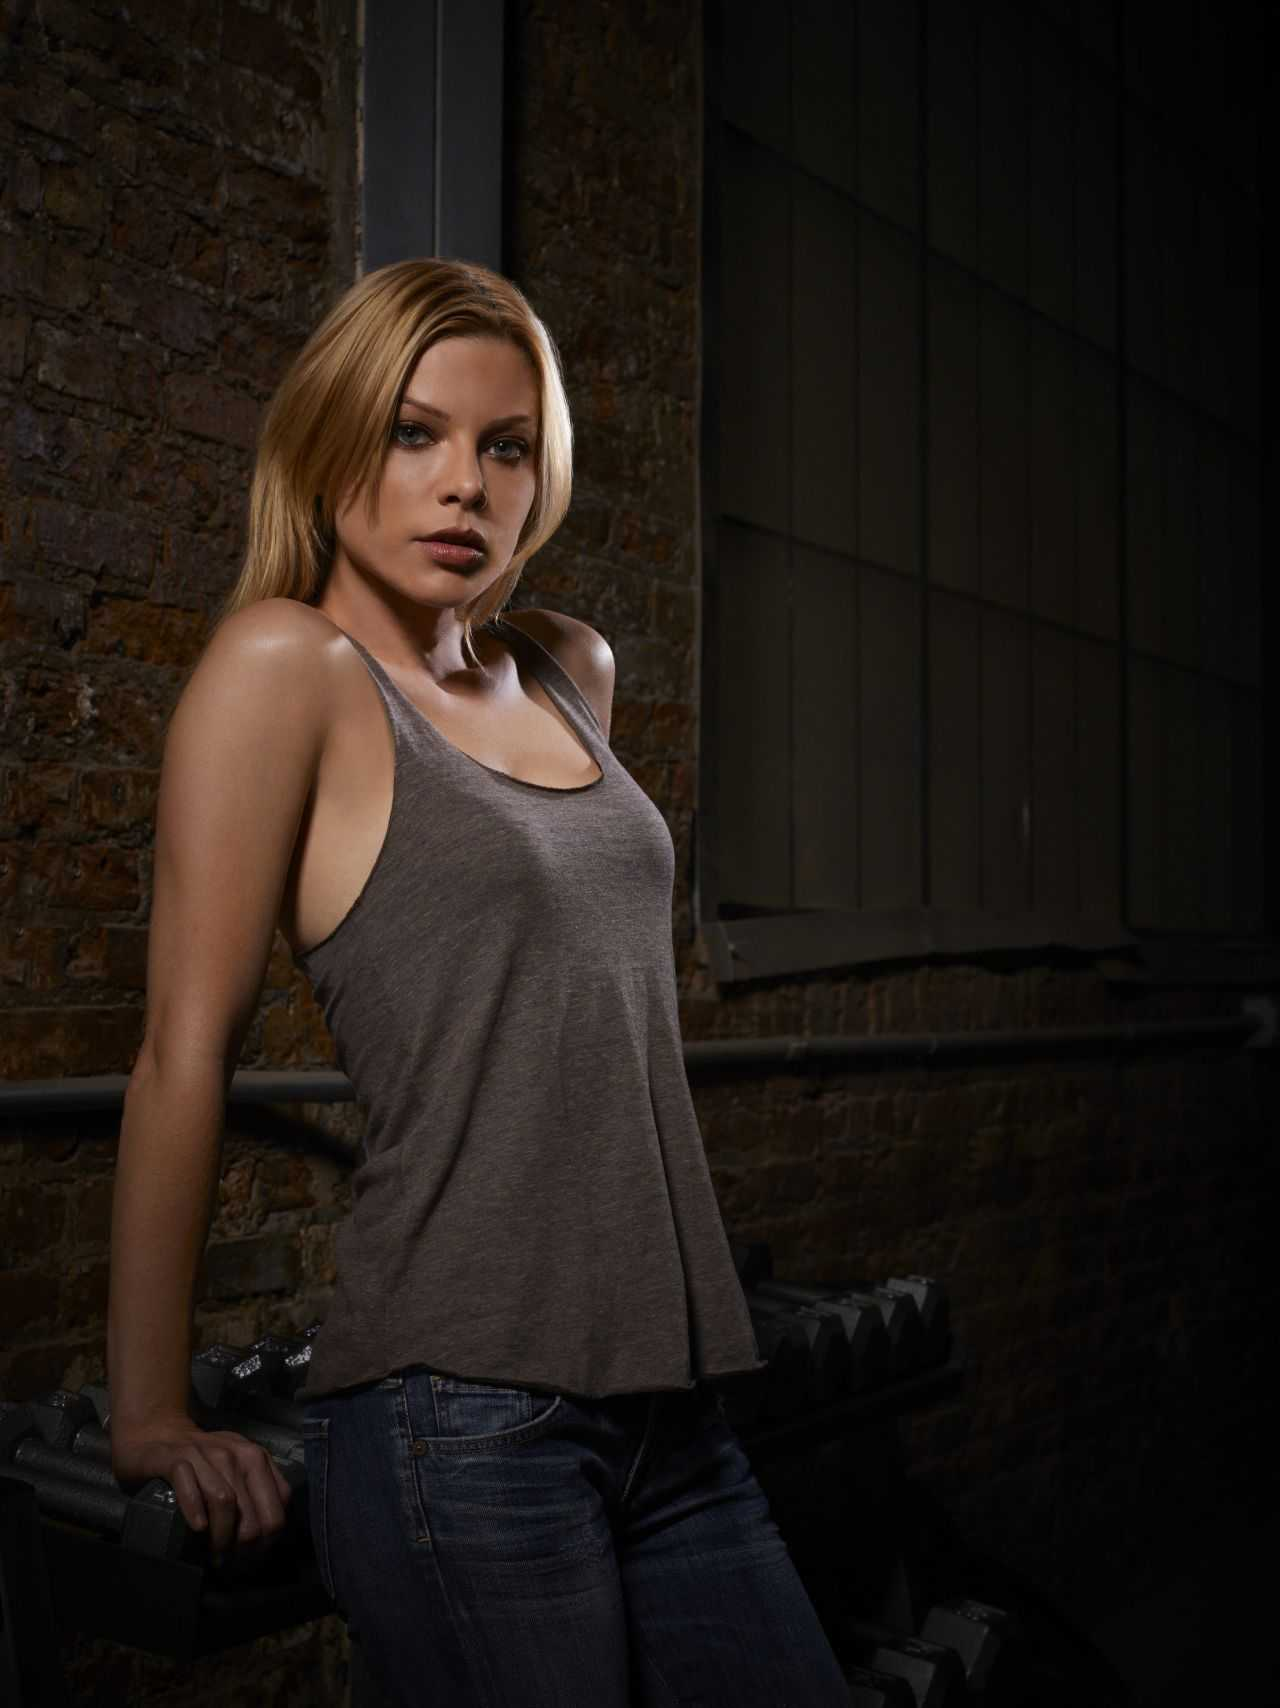 40 Hottest Lauren German Bikini Pictures Are Hot As